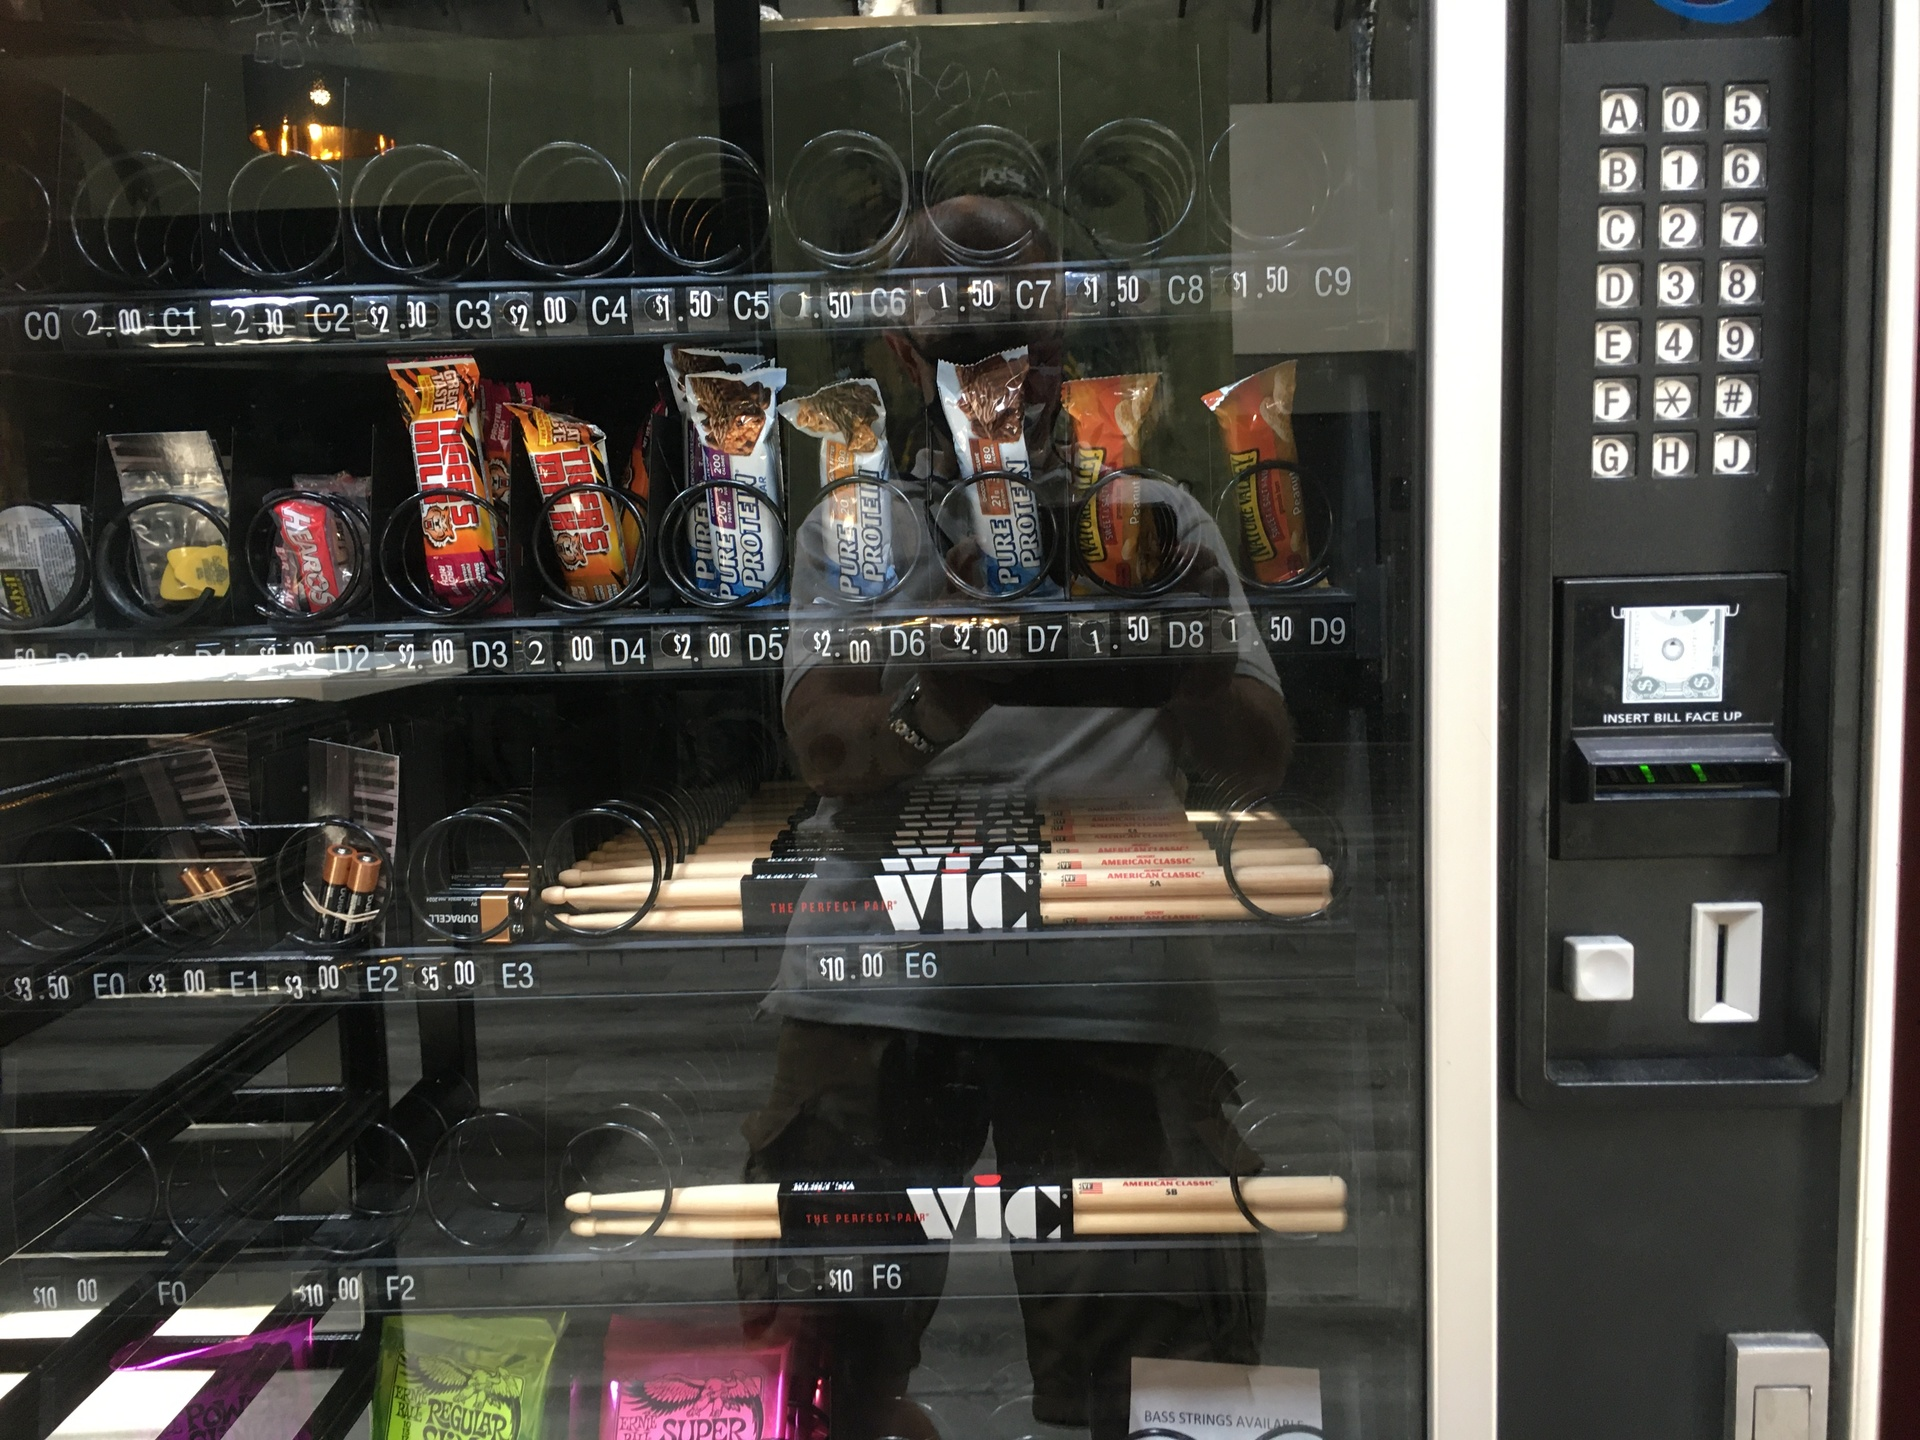 vending machine with drumsticks in it